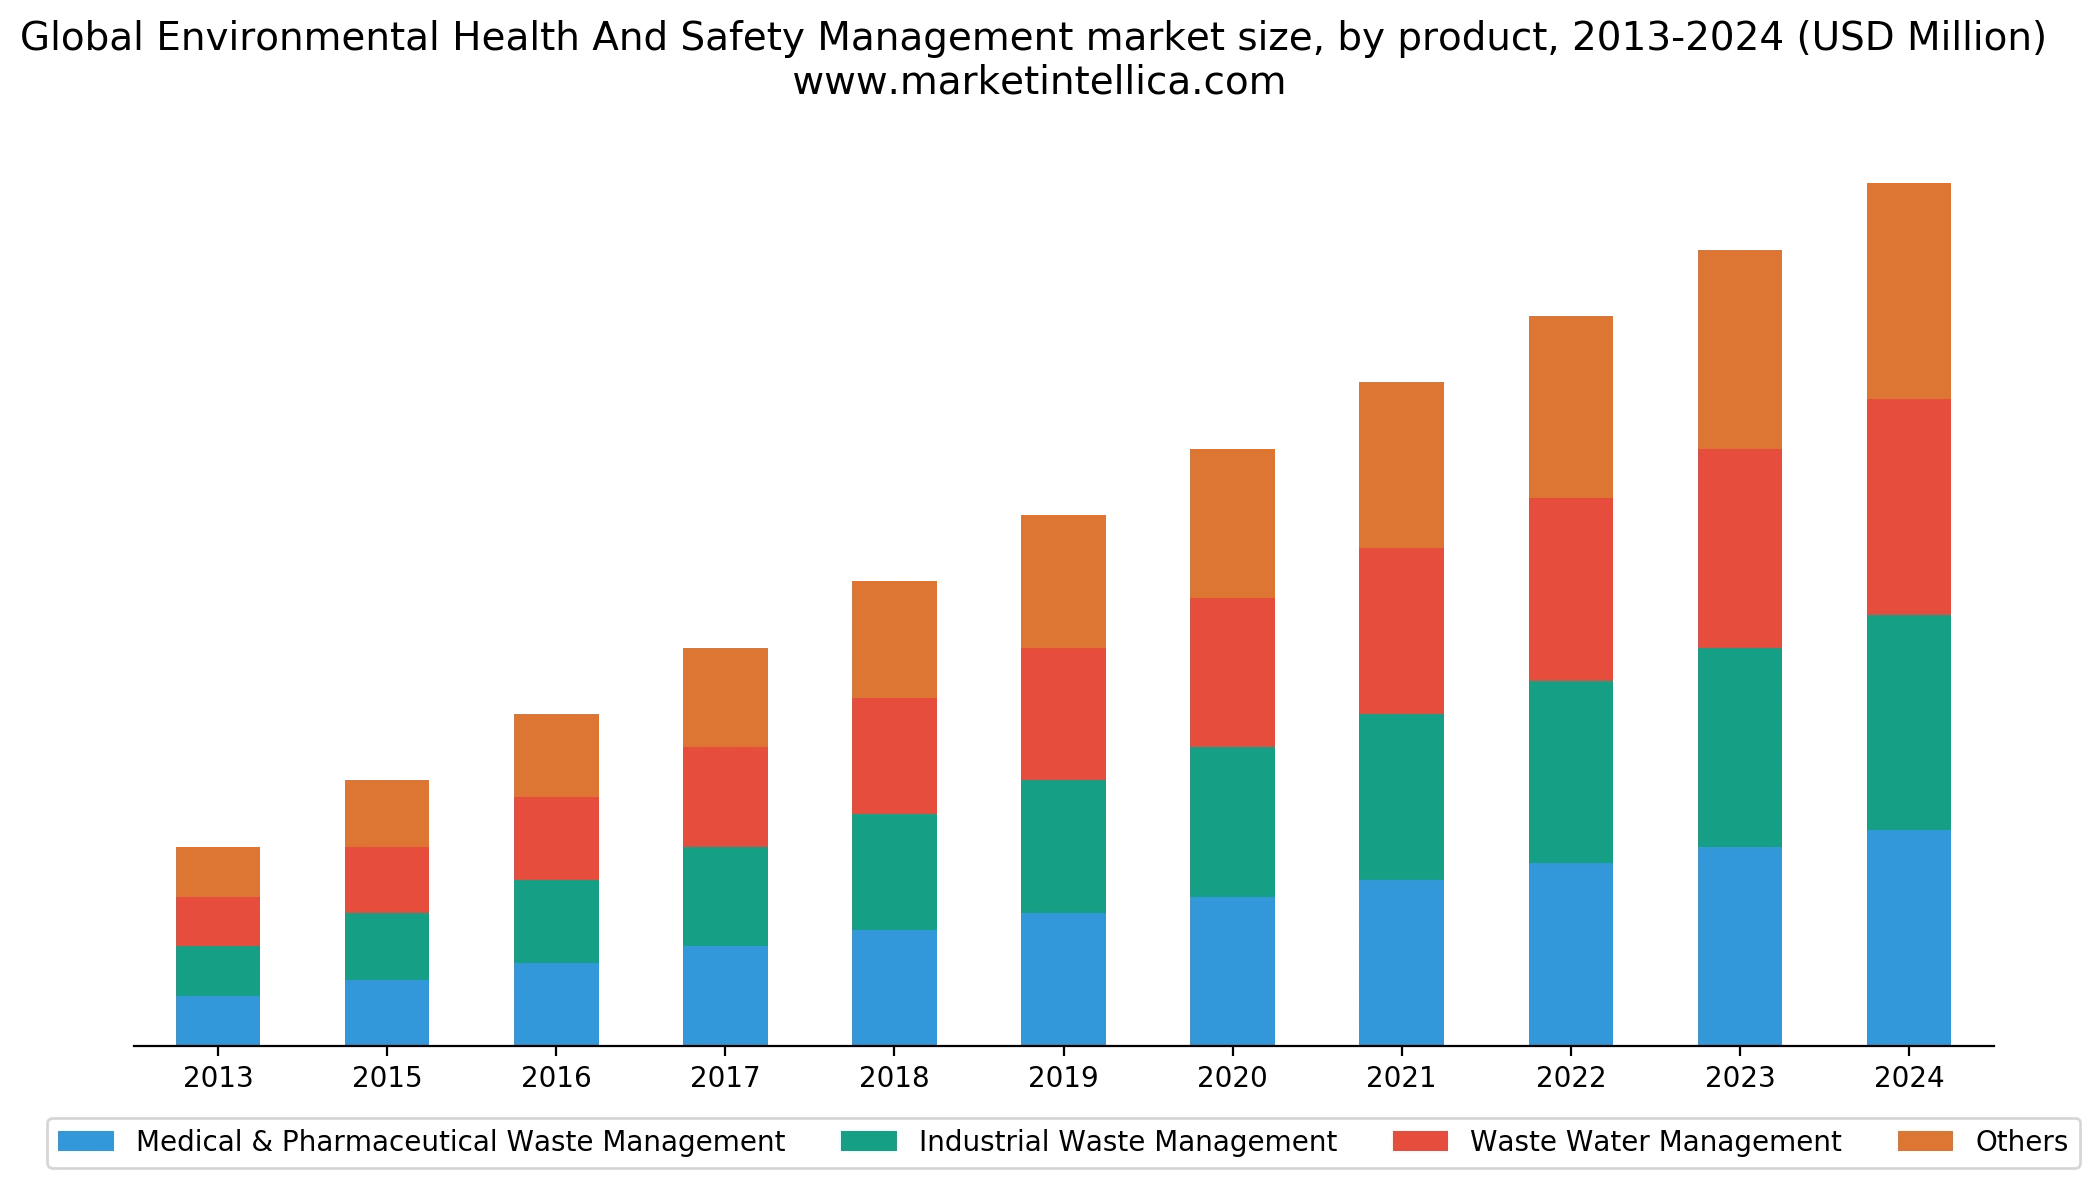 Global Environmental Health and Safety Management Market Analysis 2020 IHS, RPS Group, Verisk 3E, SGS Singapore, AECOM